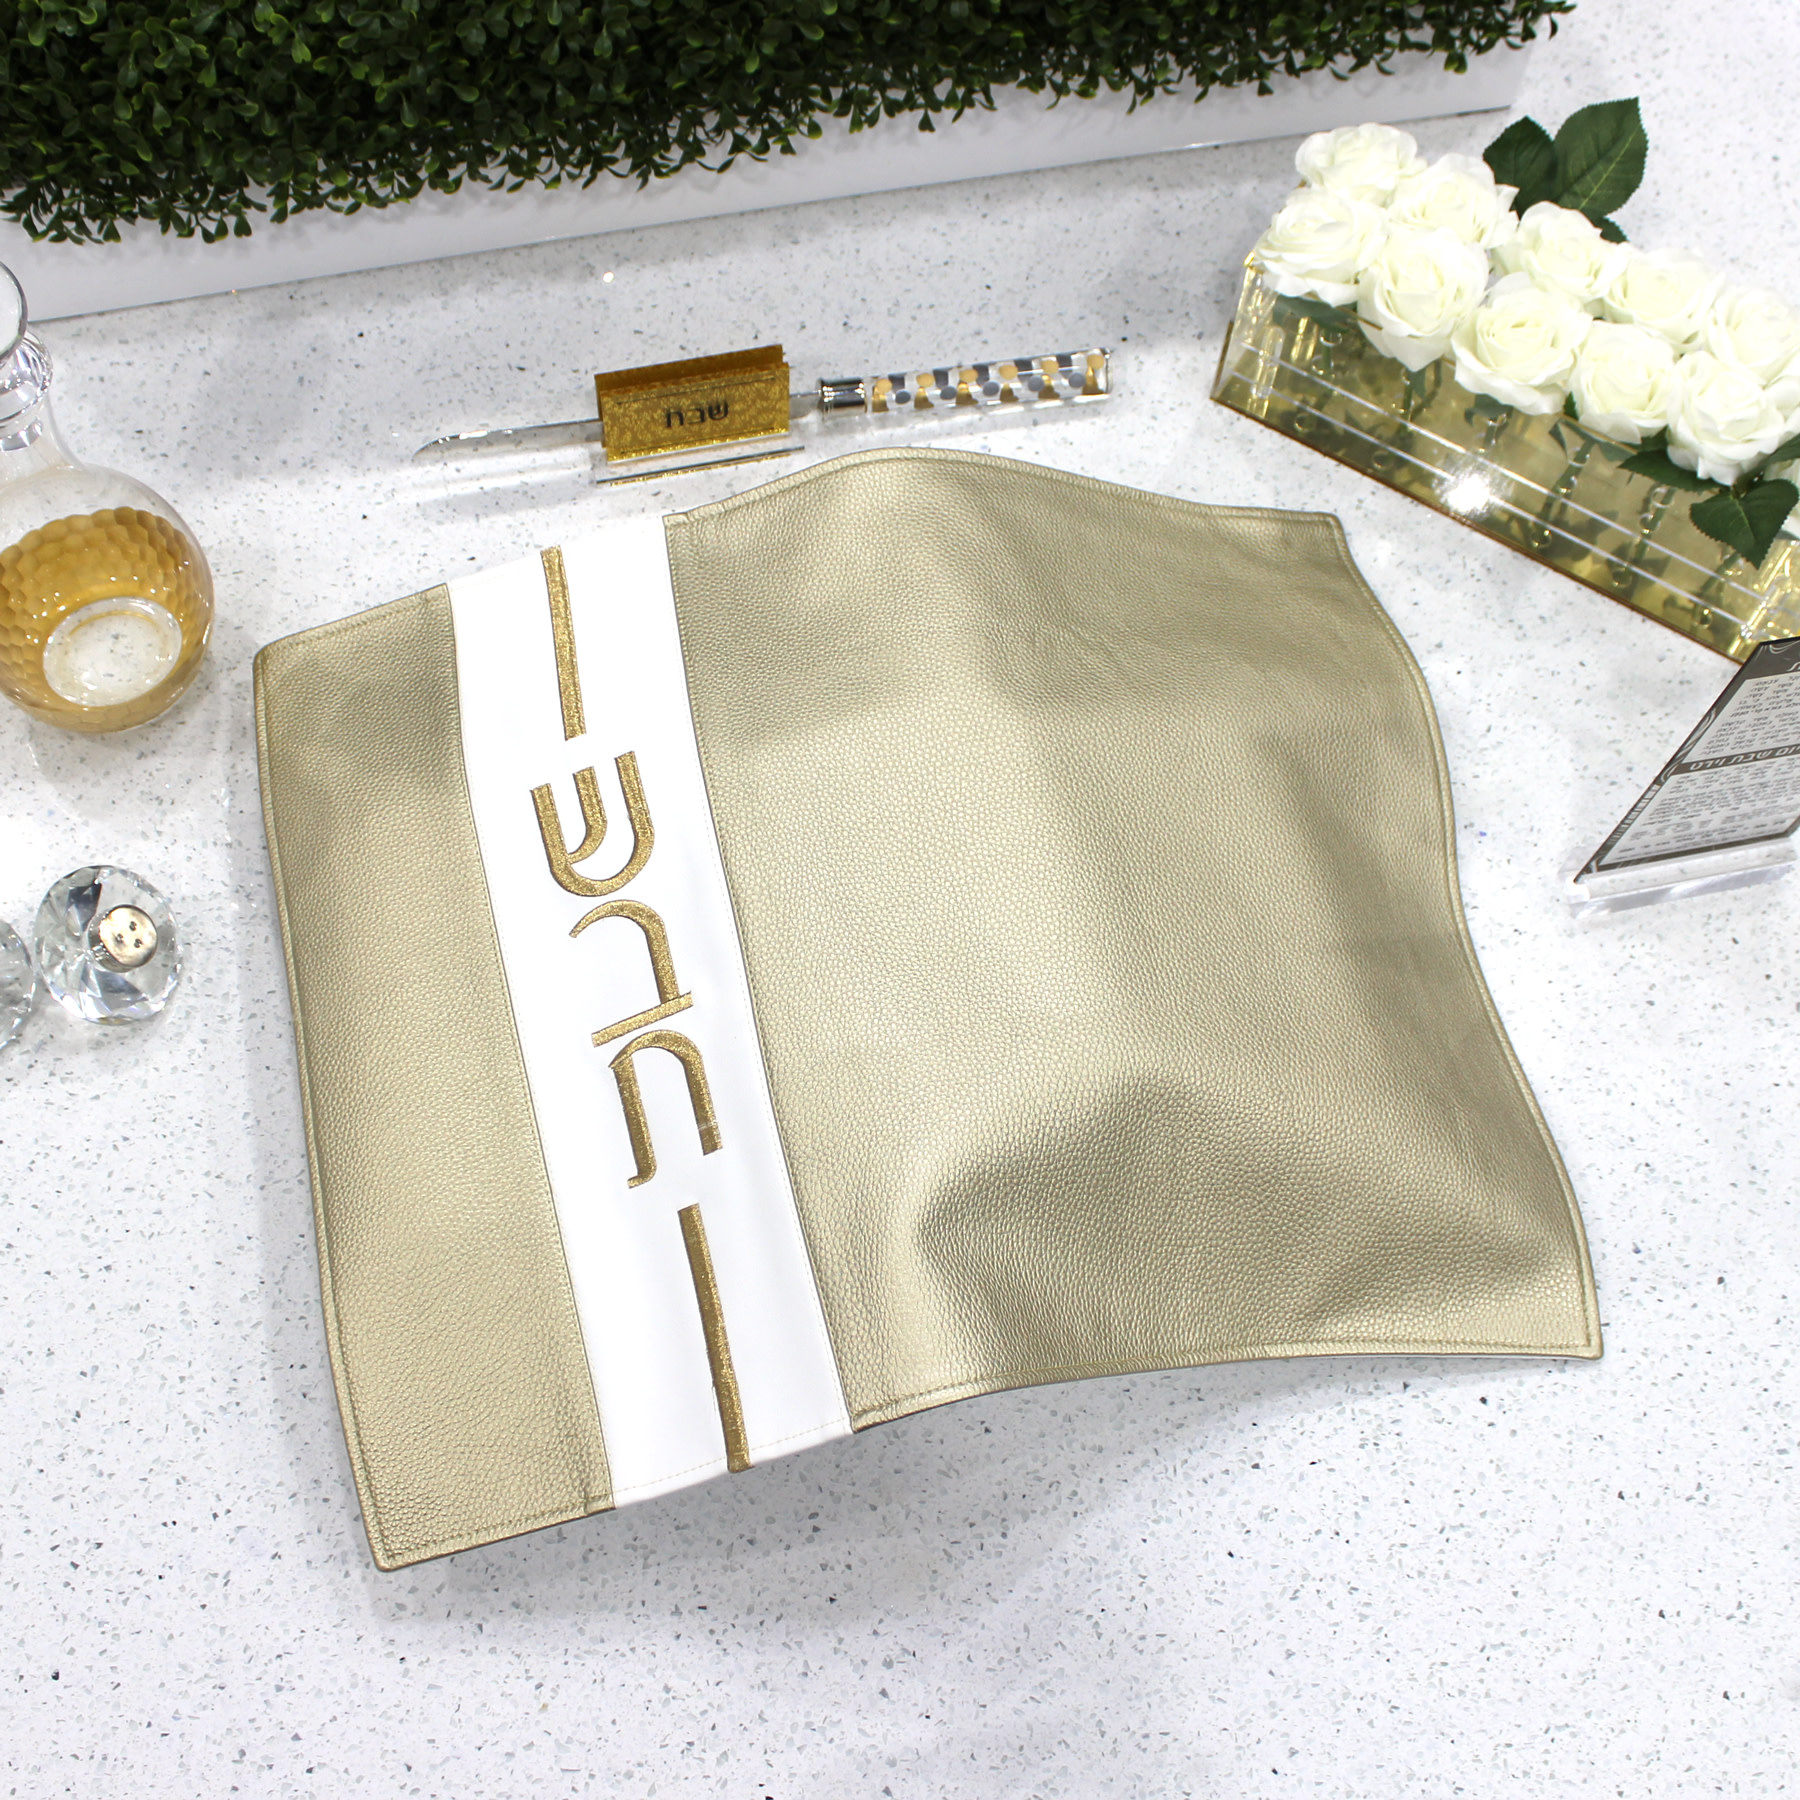 Leather Challah Cover - Vertical gold/white